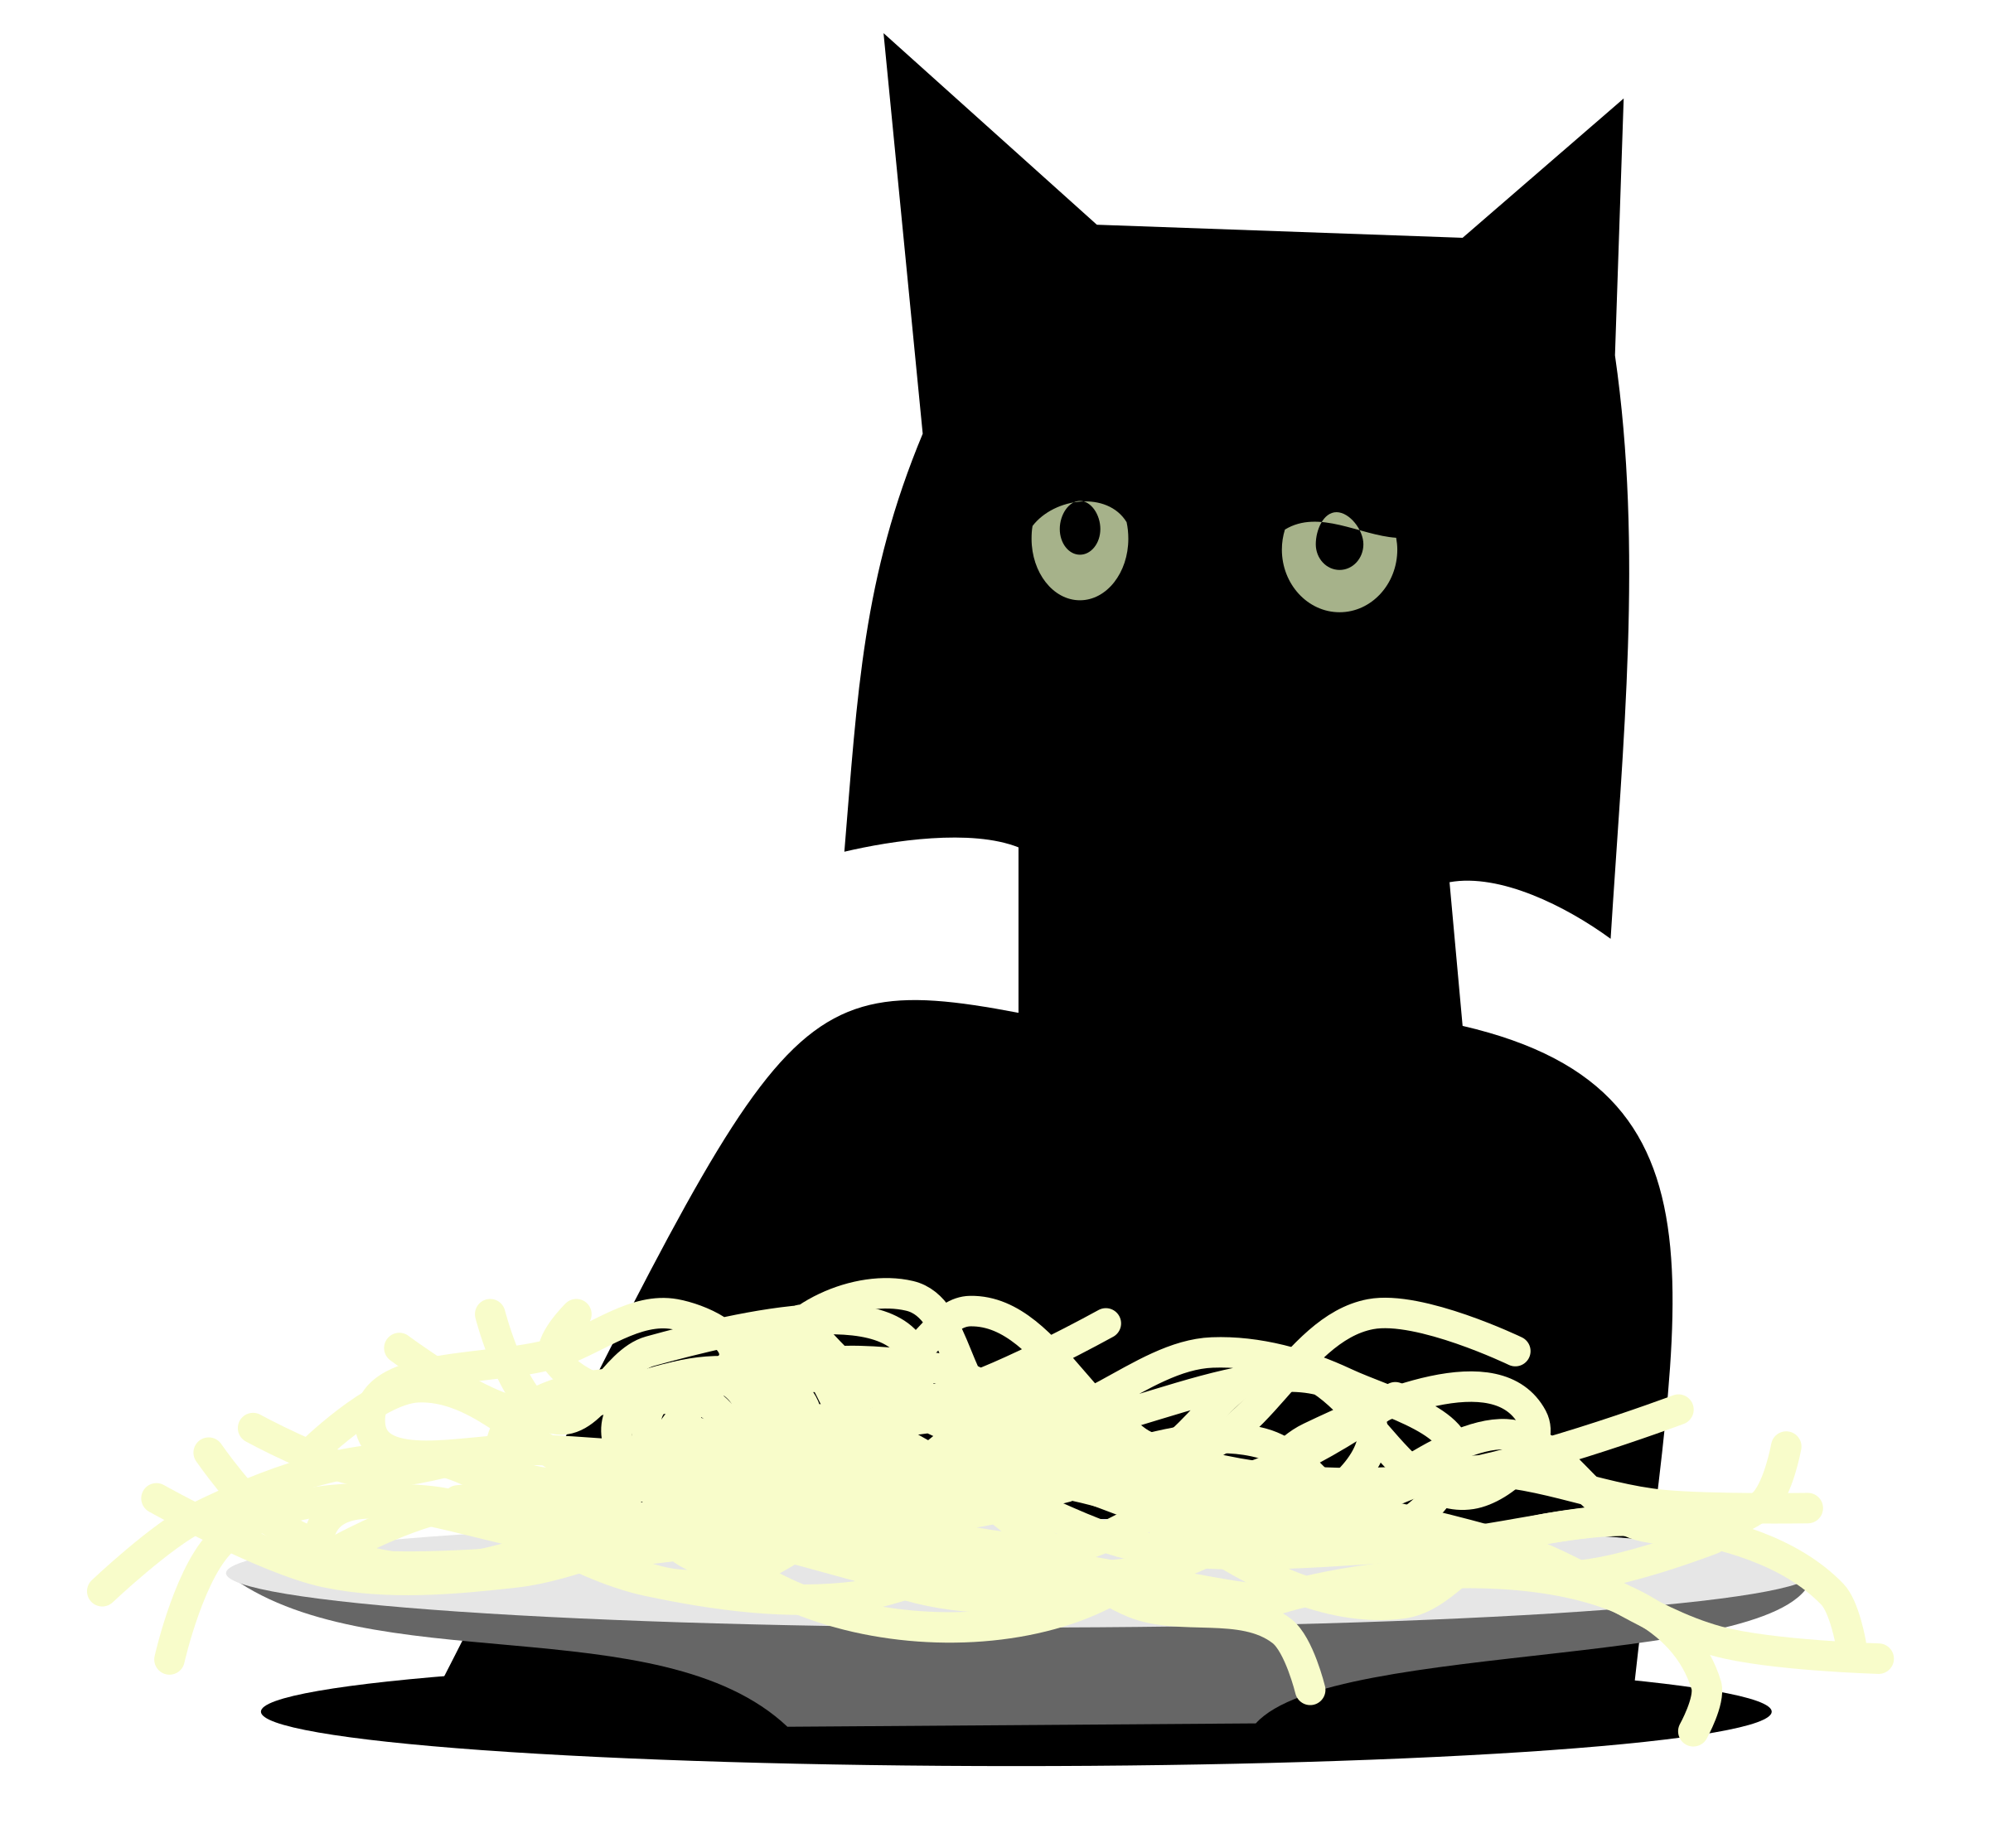 Spaghetti Cat by rones